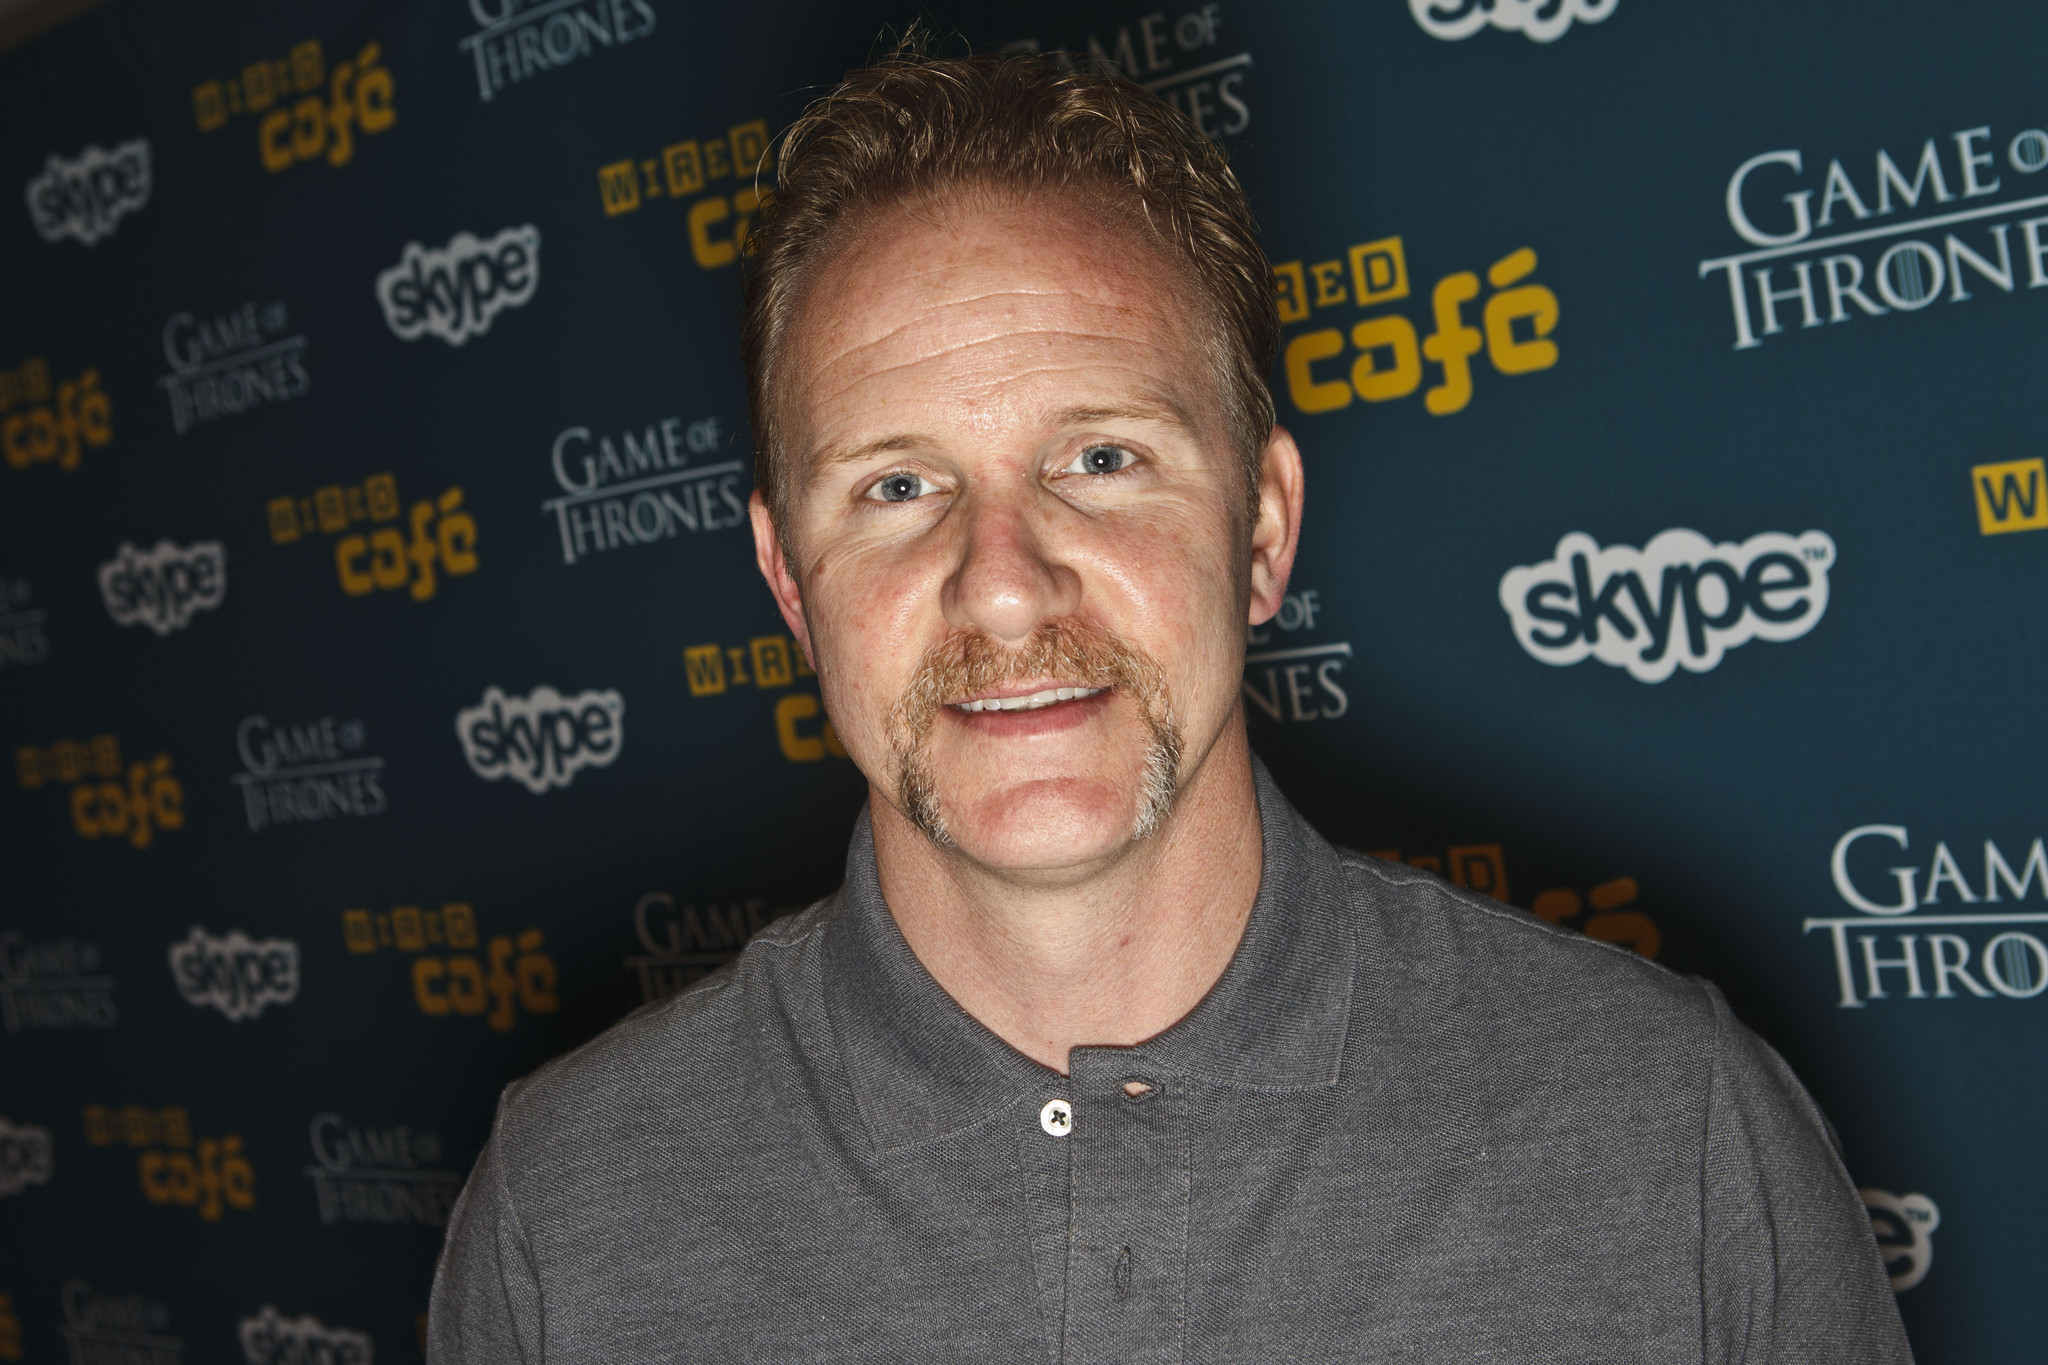 morgan spurlock judd apatow are latest to tinker new morgan spurlock judd apatow are latest to tinker new platforms la times